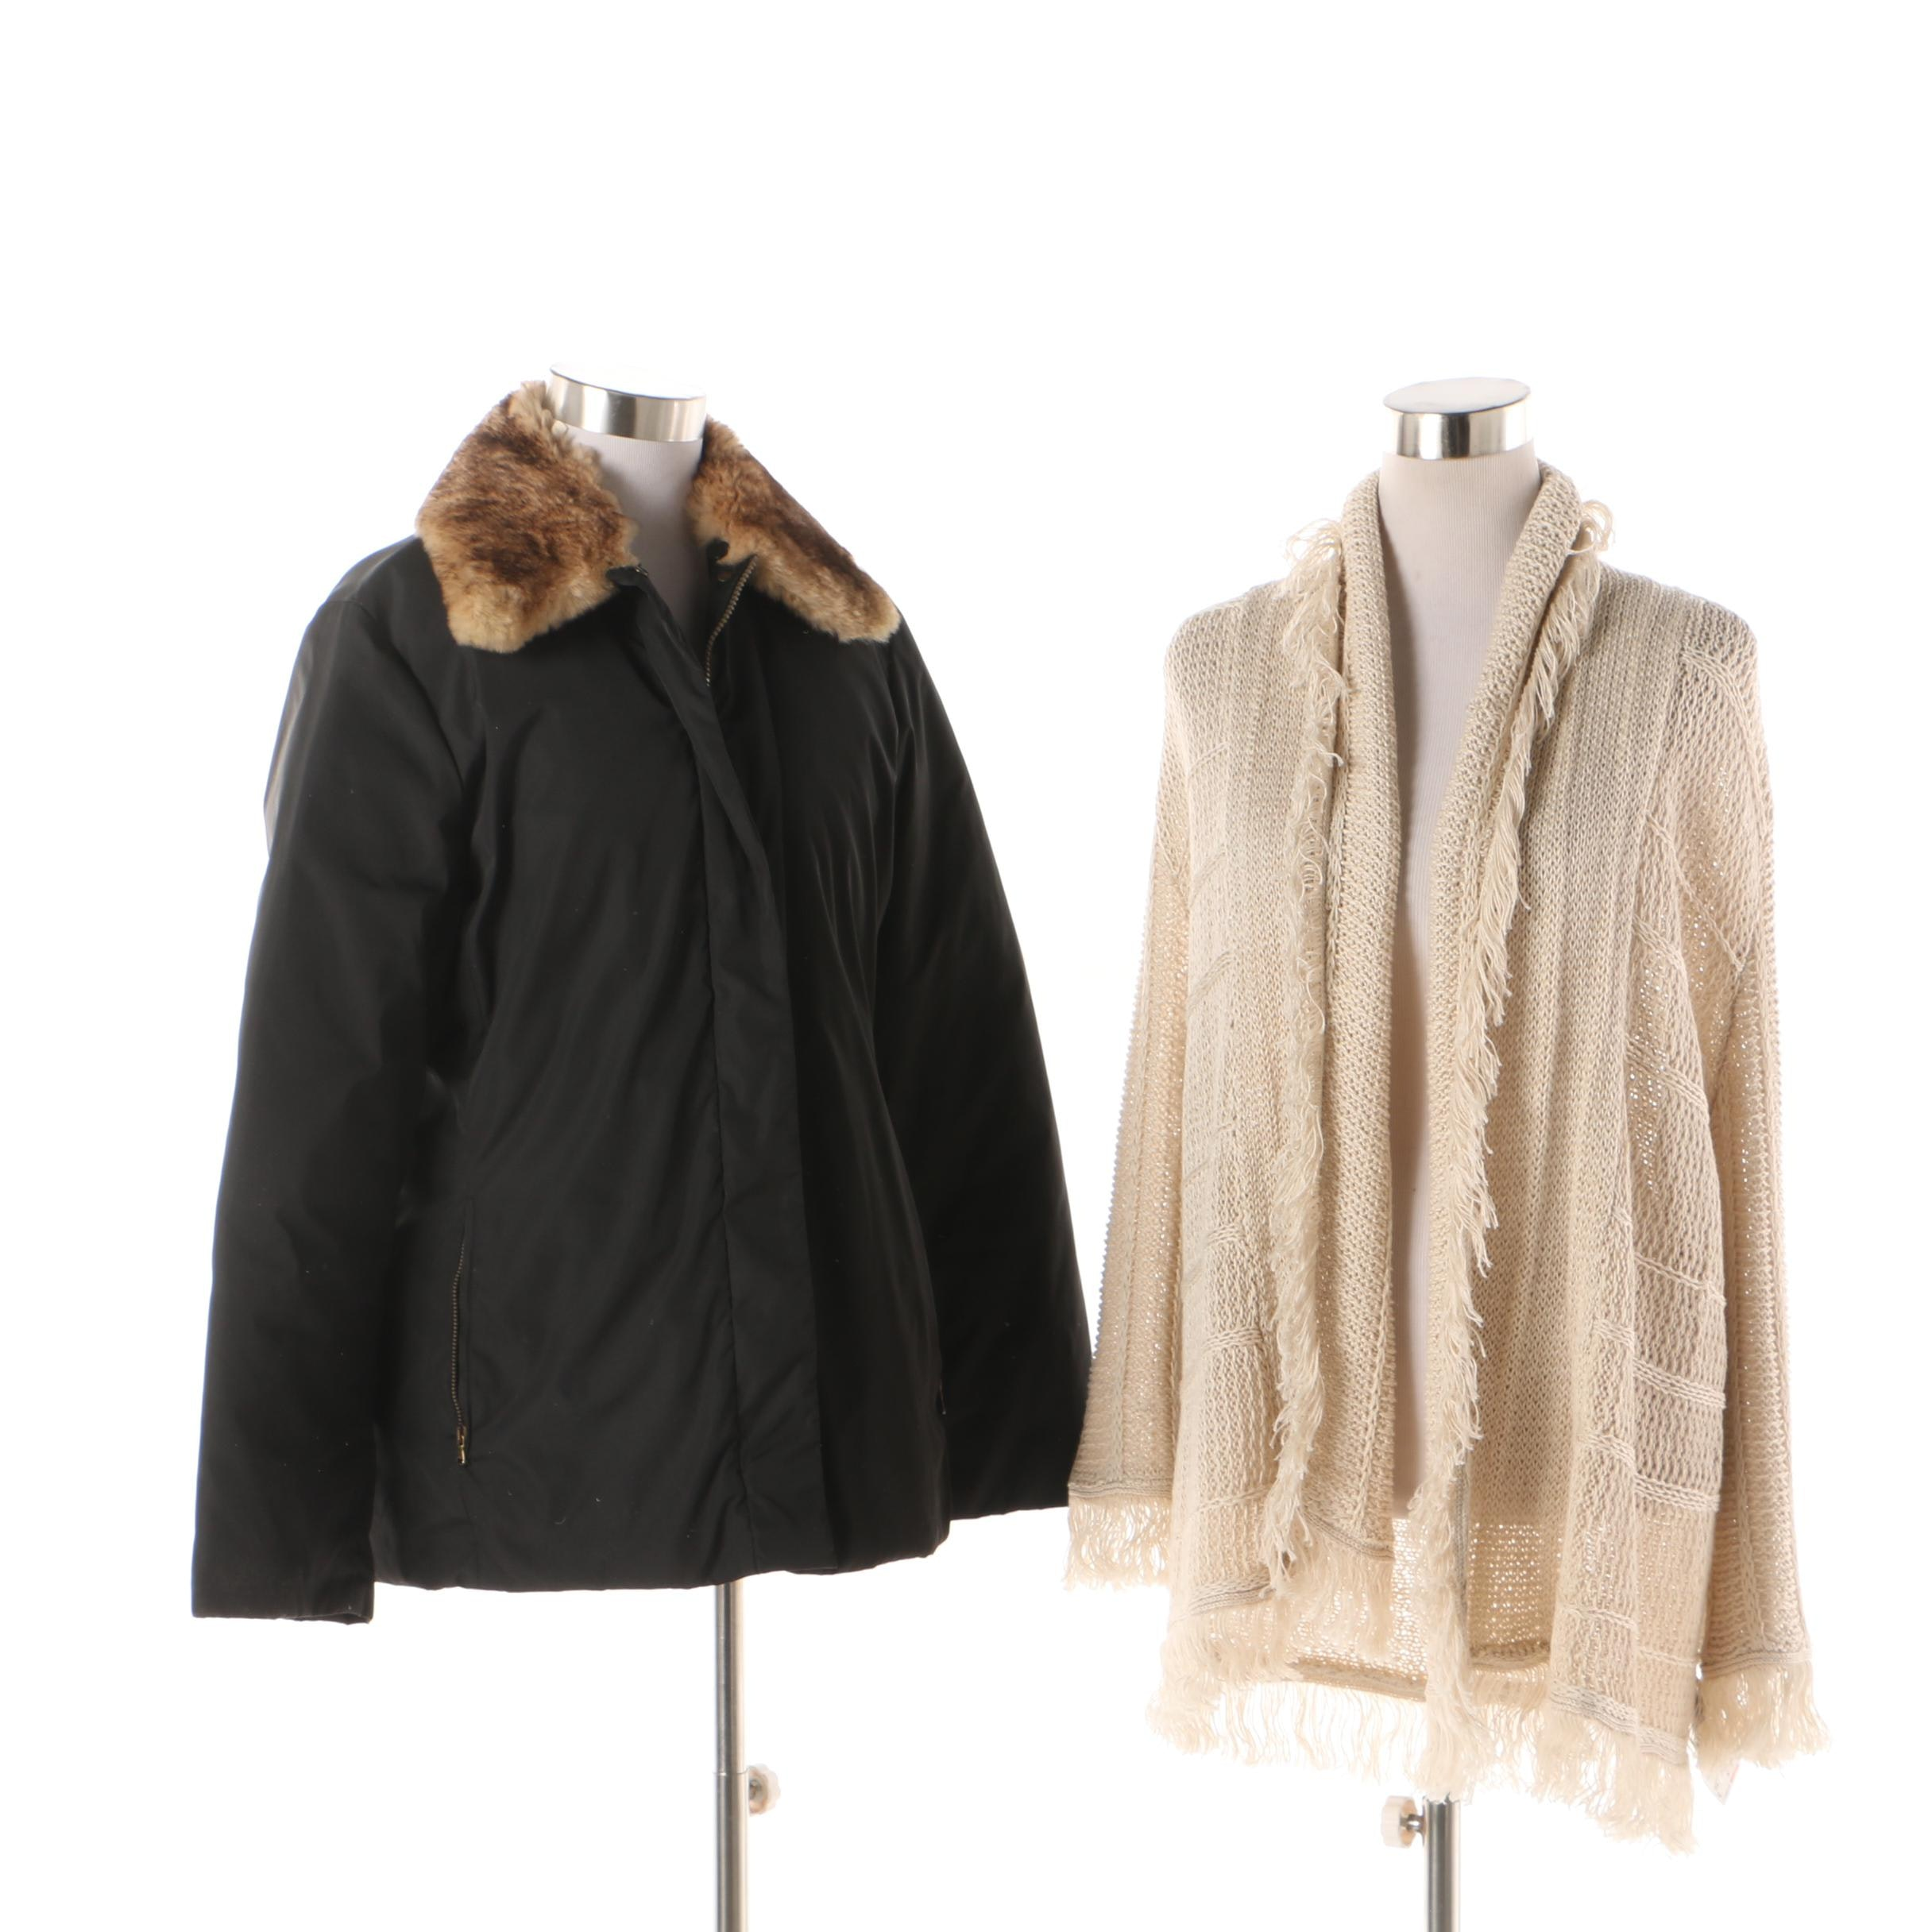 Women's Weekend Max Mara Rabbit Fur Collar Jacket and Ralph Lauren Knit Cardigan